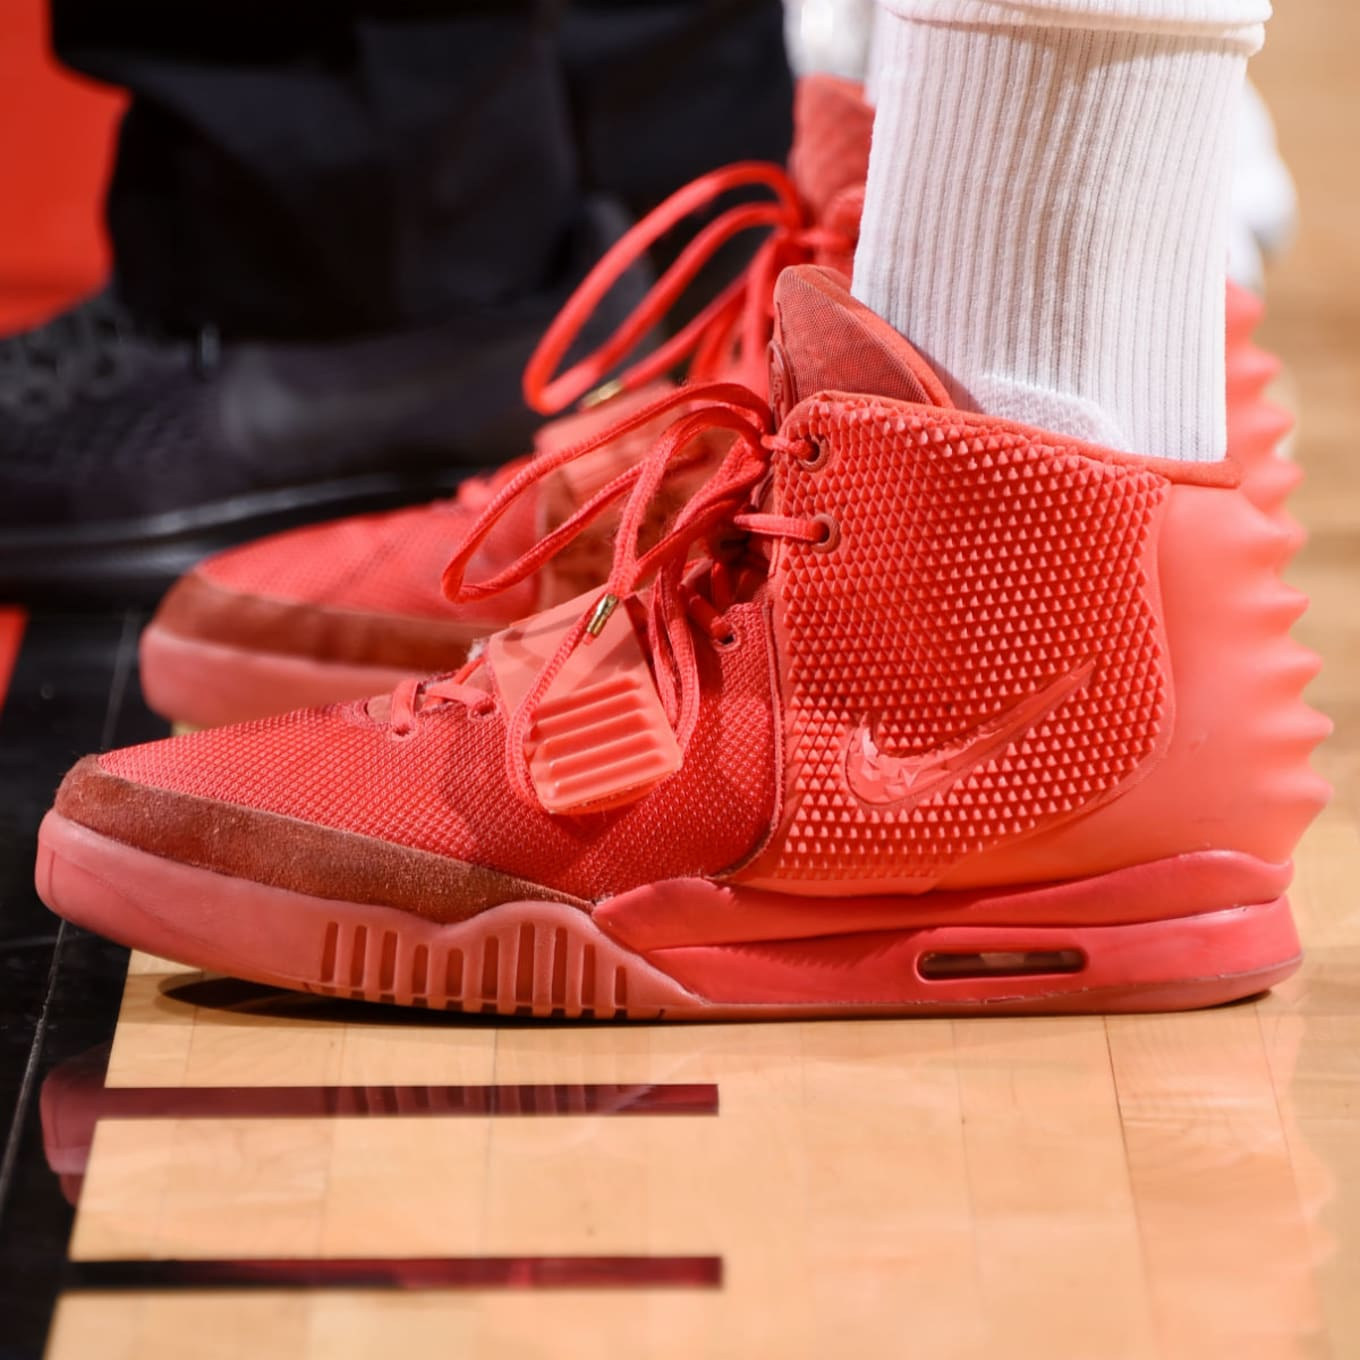 P.J. Tucker Nike Air Yeezy 2 Red October  019c468b0e48